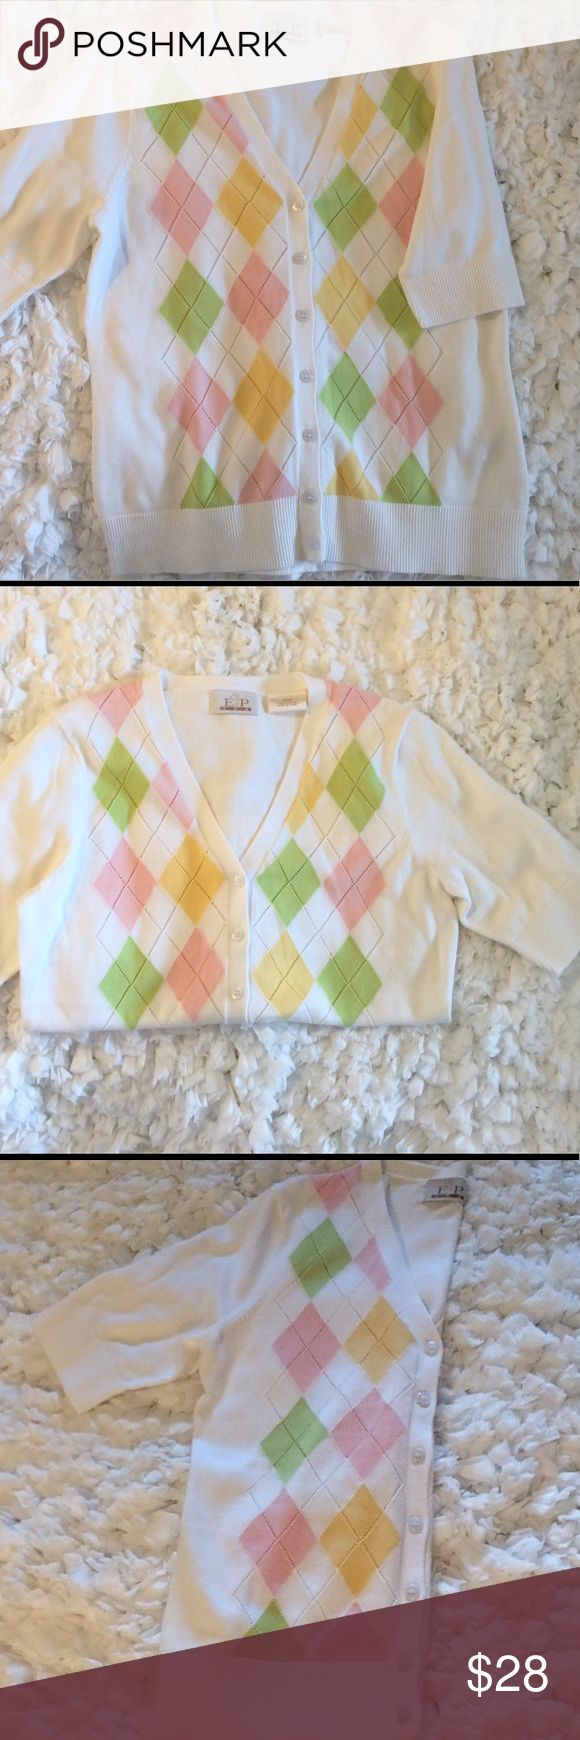 """E P Pro Argyle 100% Cotton Sweater Cool Cotton Short Sleeve Golf Sweater. Not just for golf. Summery pink, yellow, and light green argyle on white background. Length 23""""' chest 19"""". E P Pro is a high end golf clothing brand. E P Pro Sweaters Cardigans"""